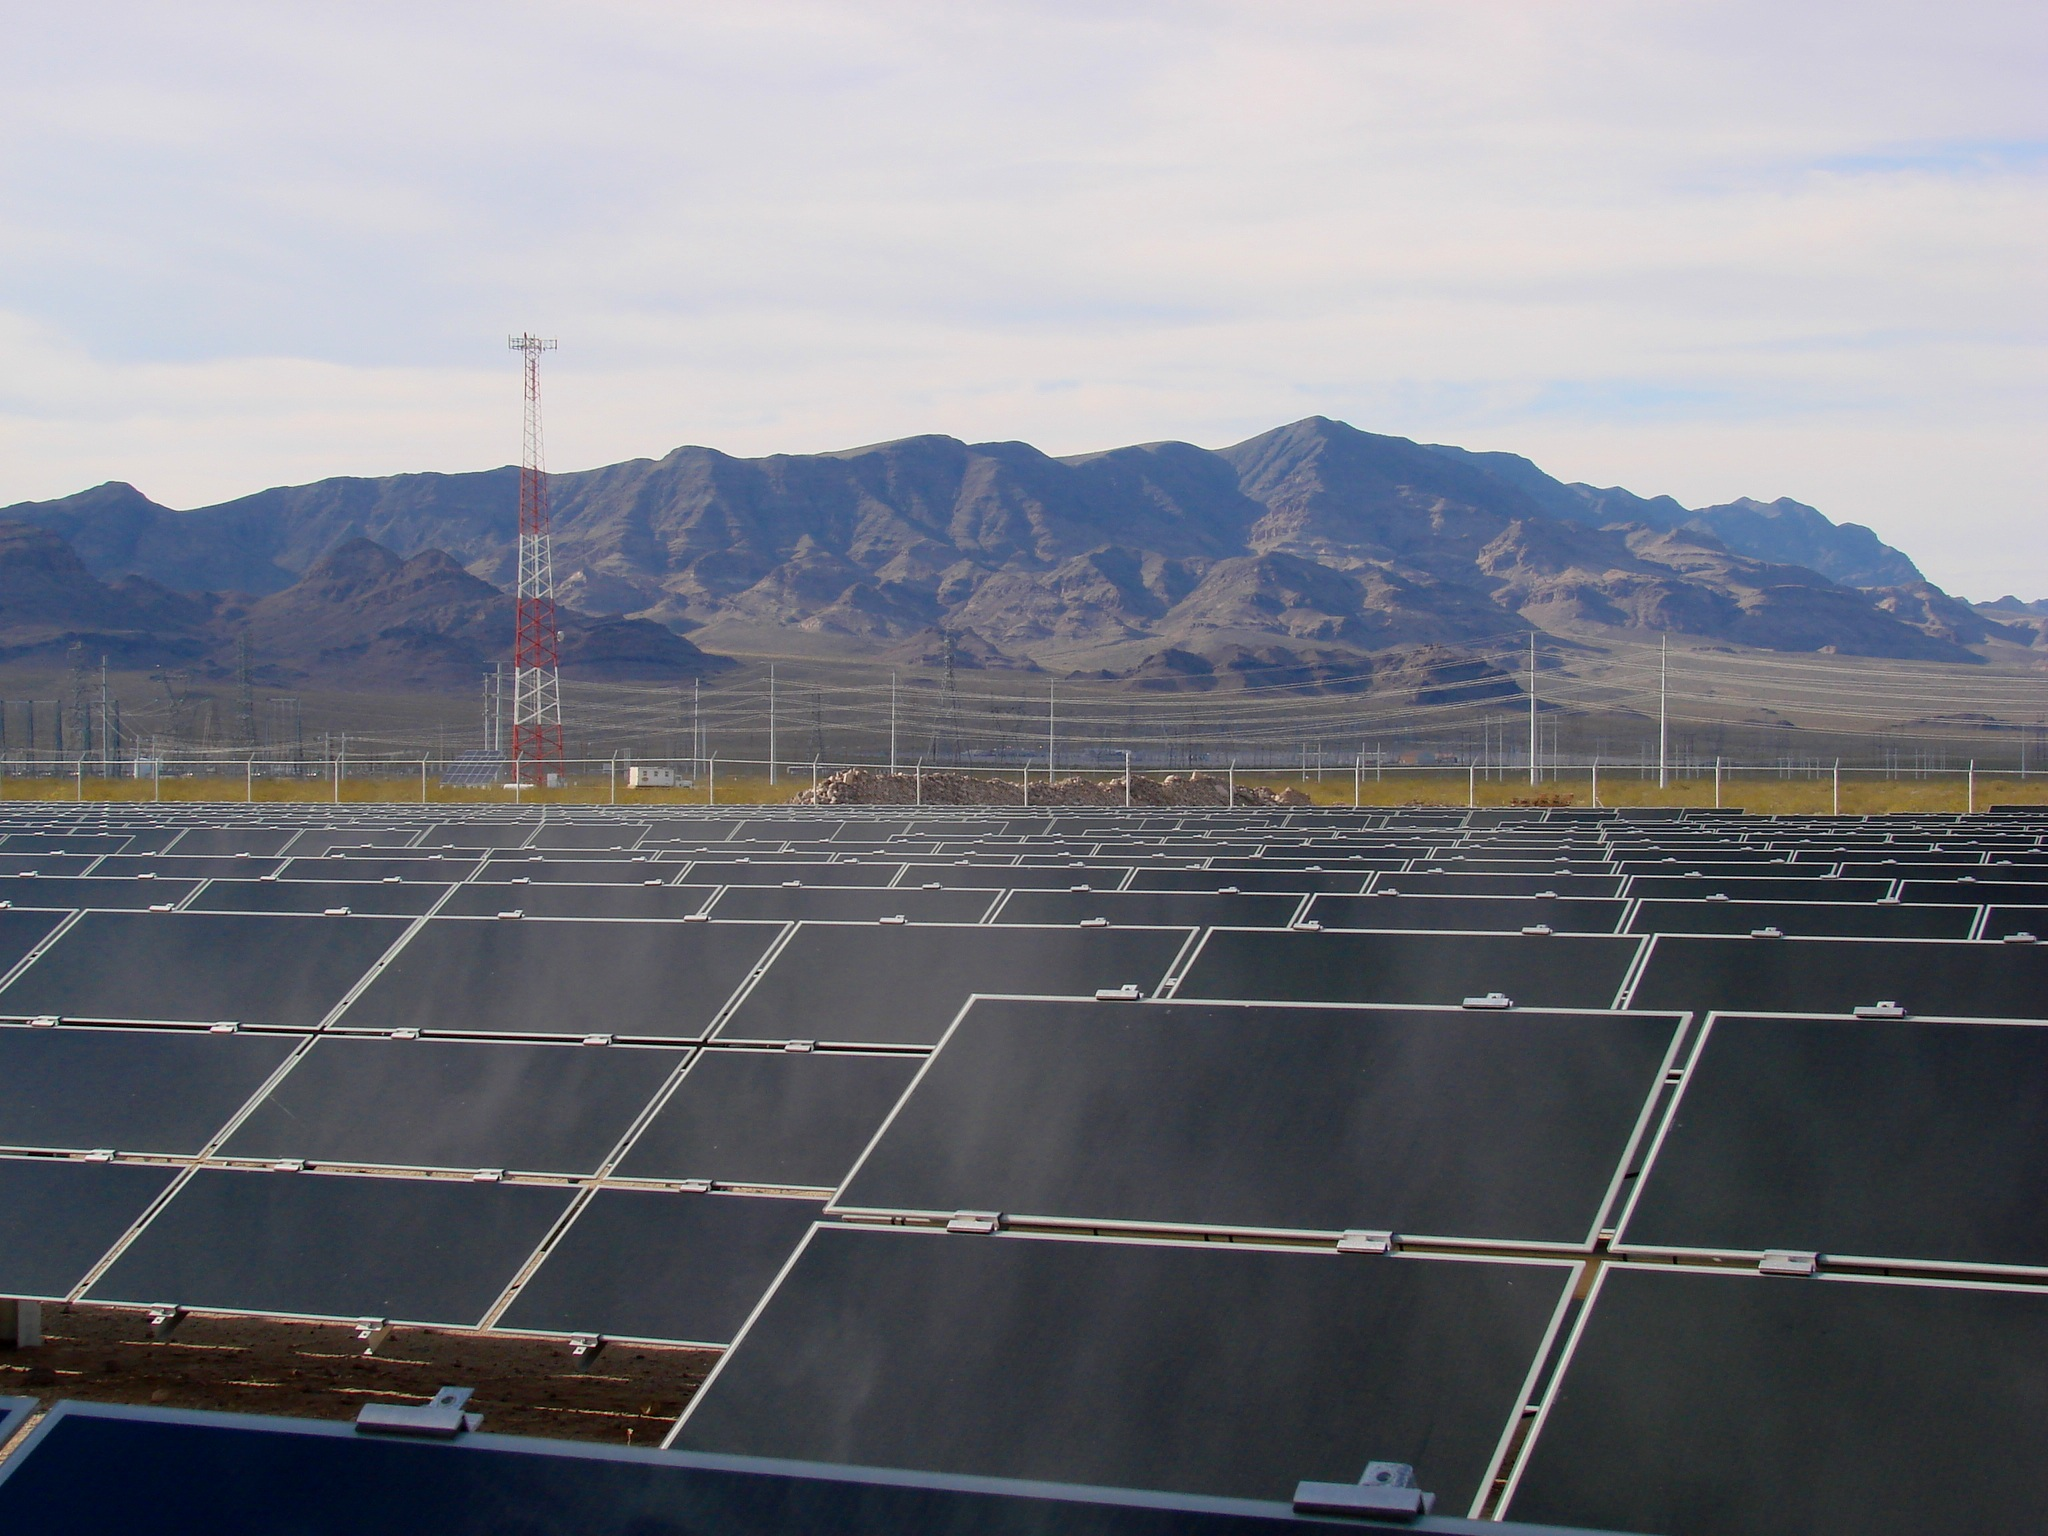 - RECON was involved in the large-scale Desert Renewable Energy Conservation Plan and the SDG&E Sunrise Powerlink projects among many others. Though this experience, we are highly familiar with the infrastructure network for solar, wind, and geothermal renewable energy facilities.